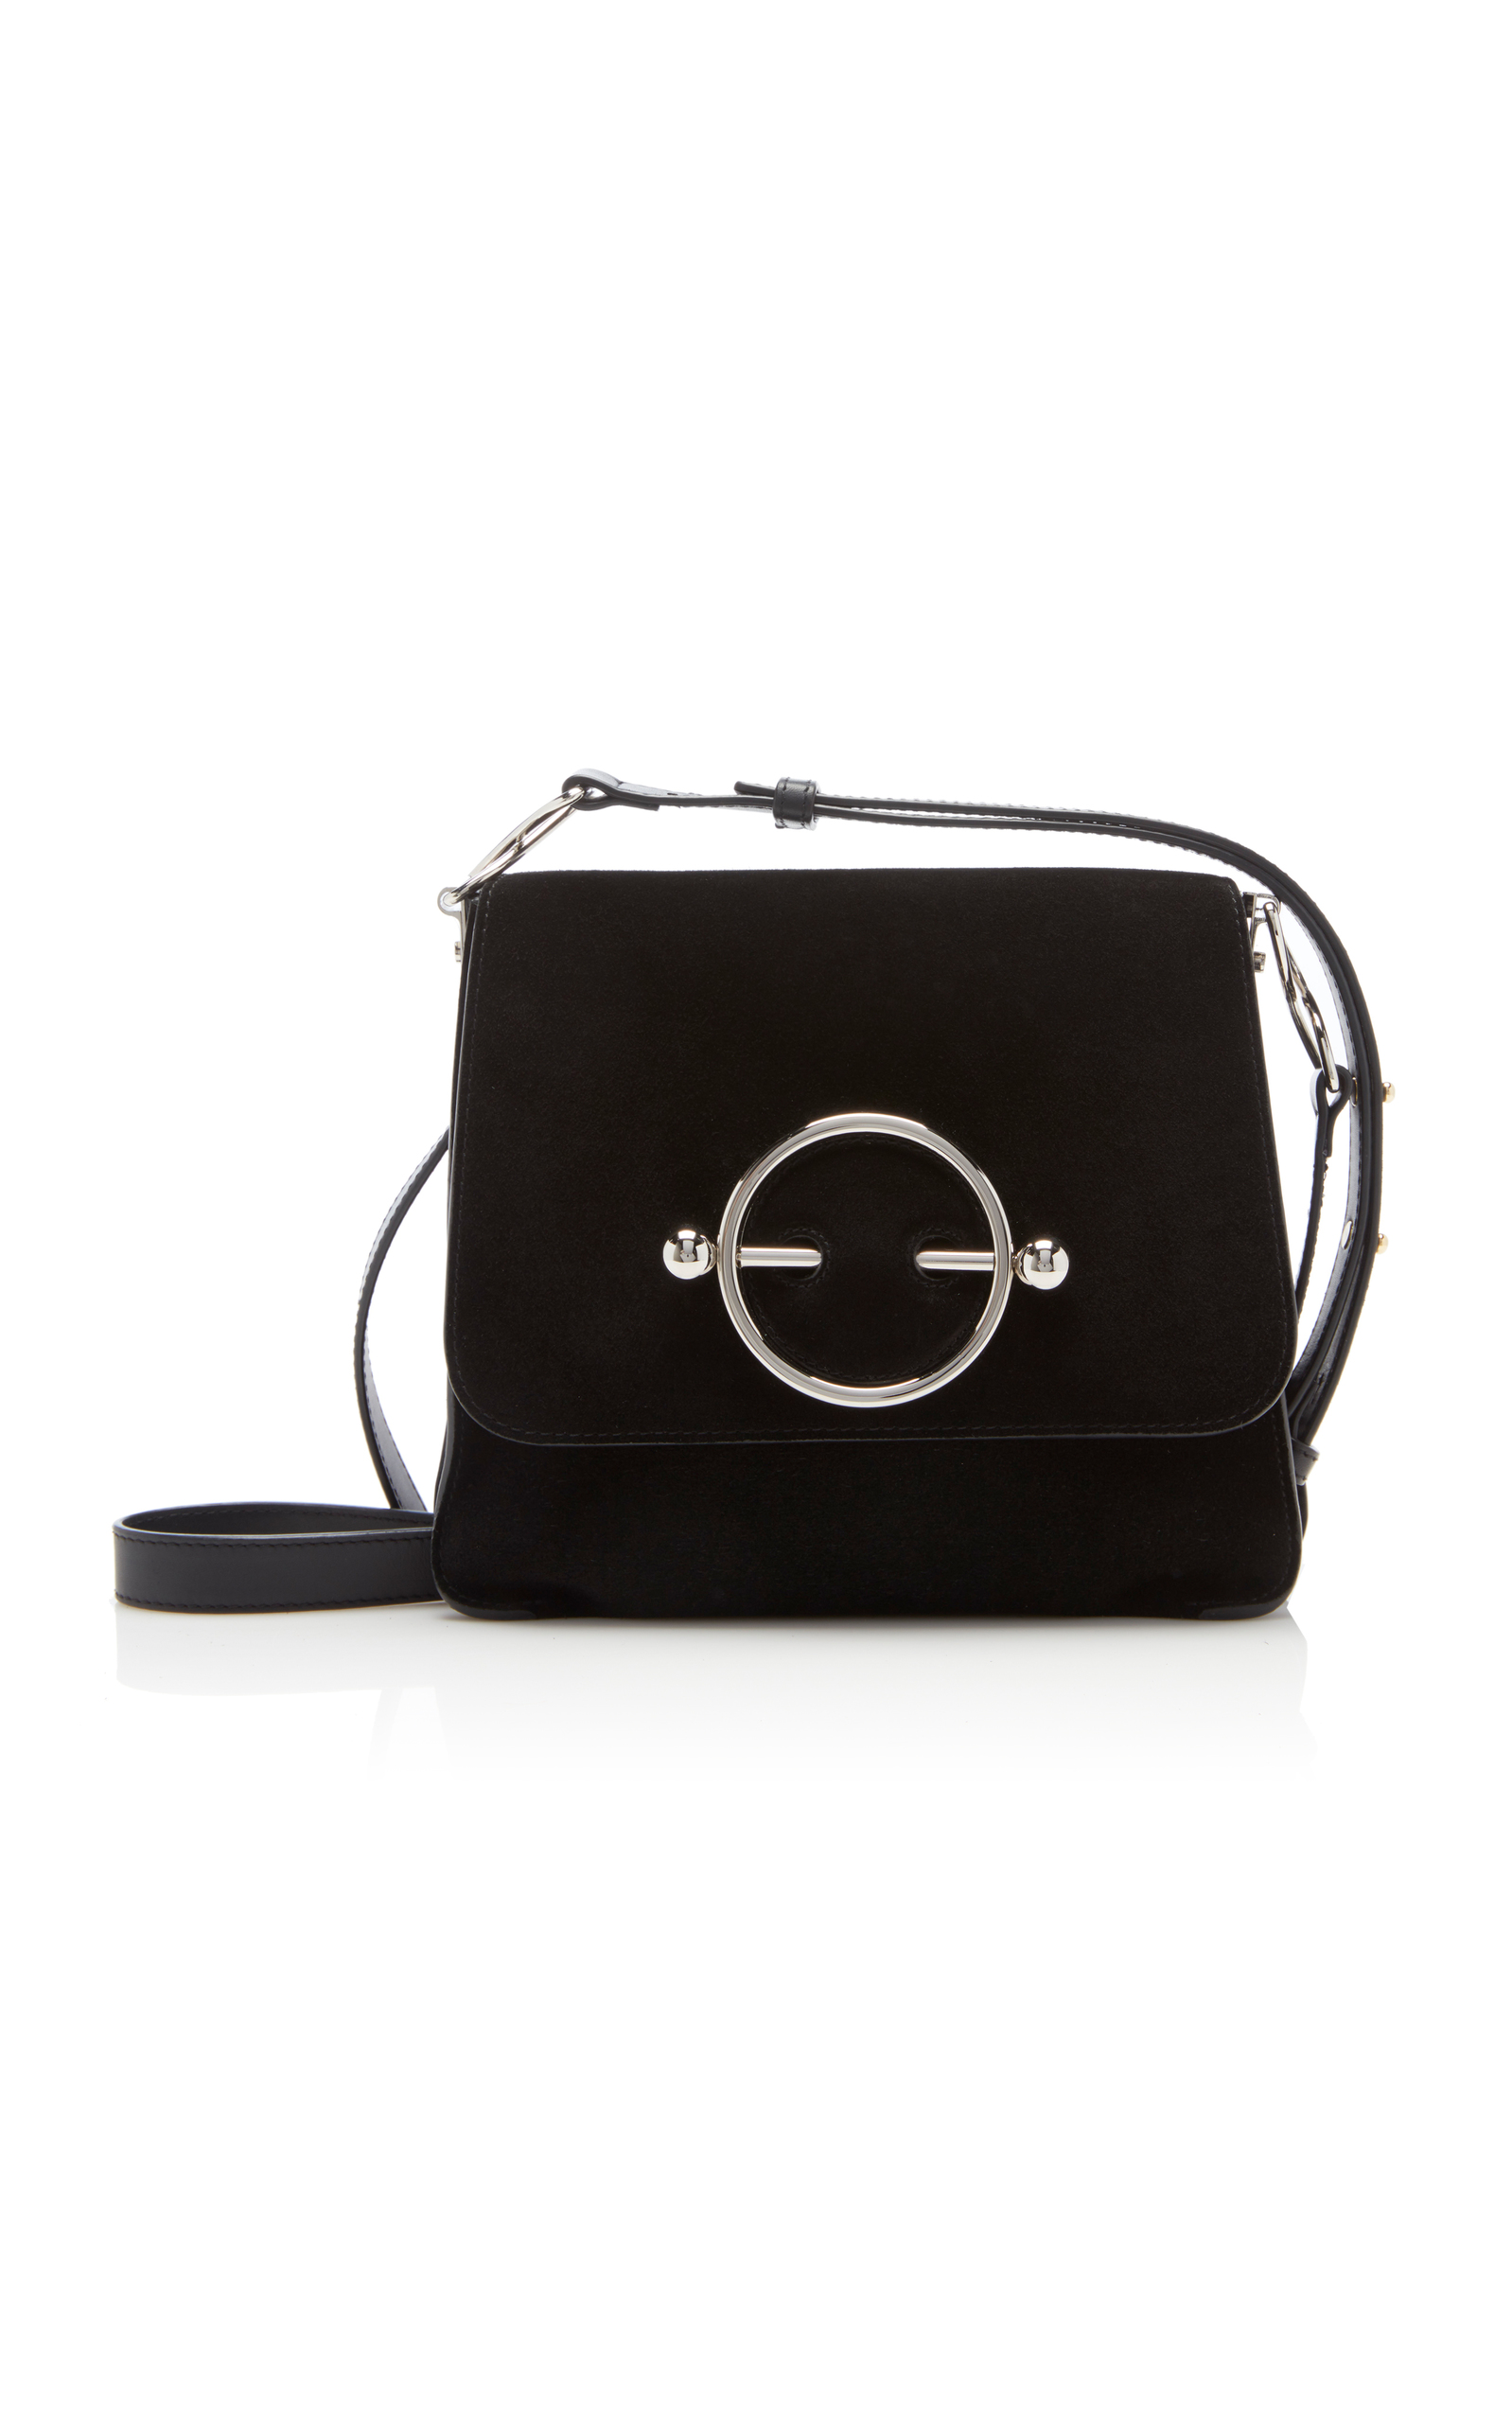 Disc Suede And Leather Shoulder Bag, Size Os, Women, Black